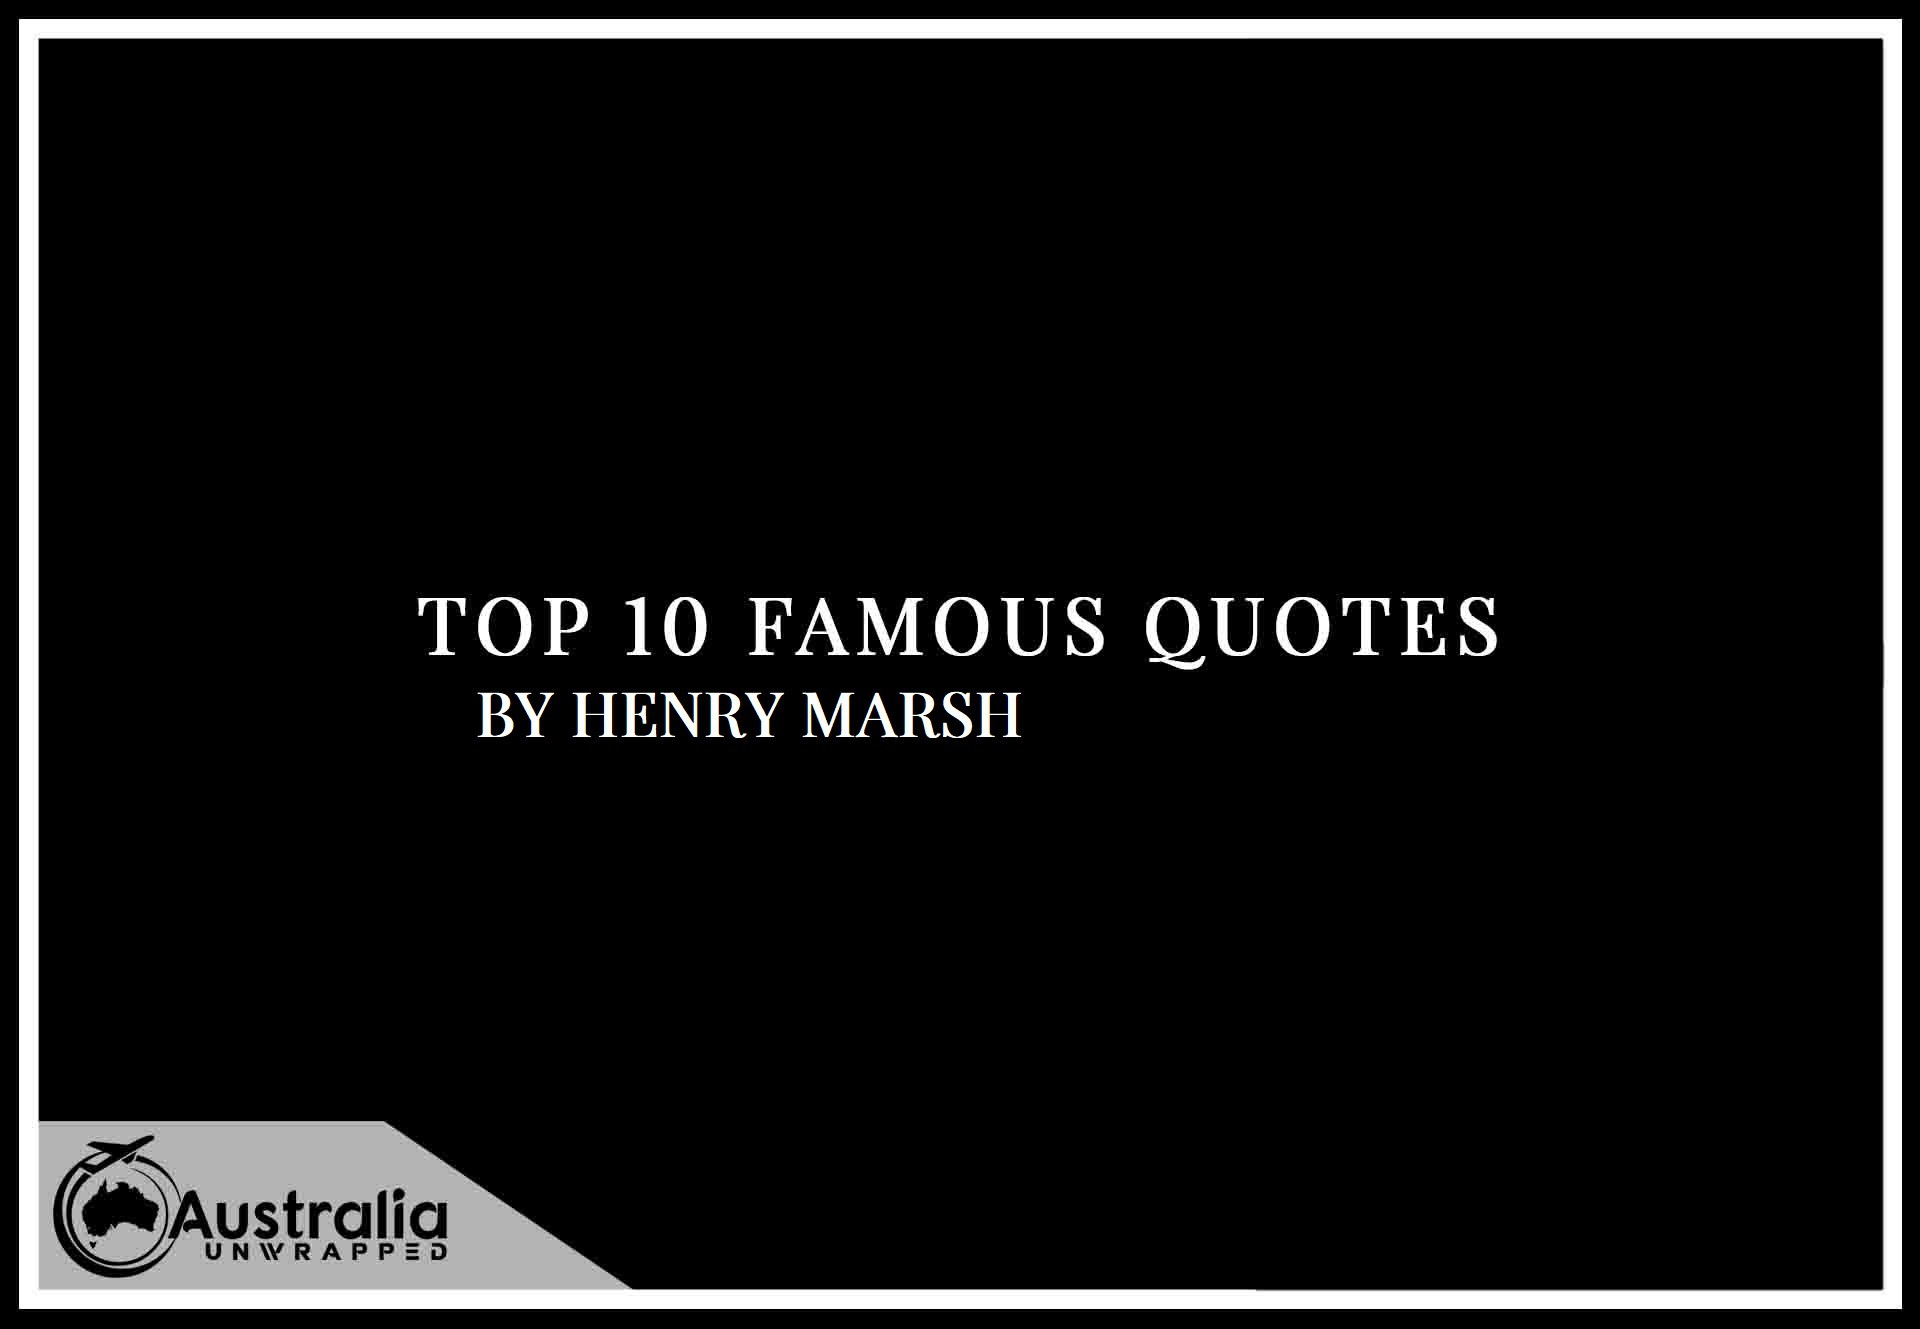 Top 10 Famous Quotes by Author Henry Marsh